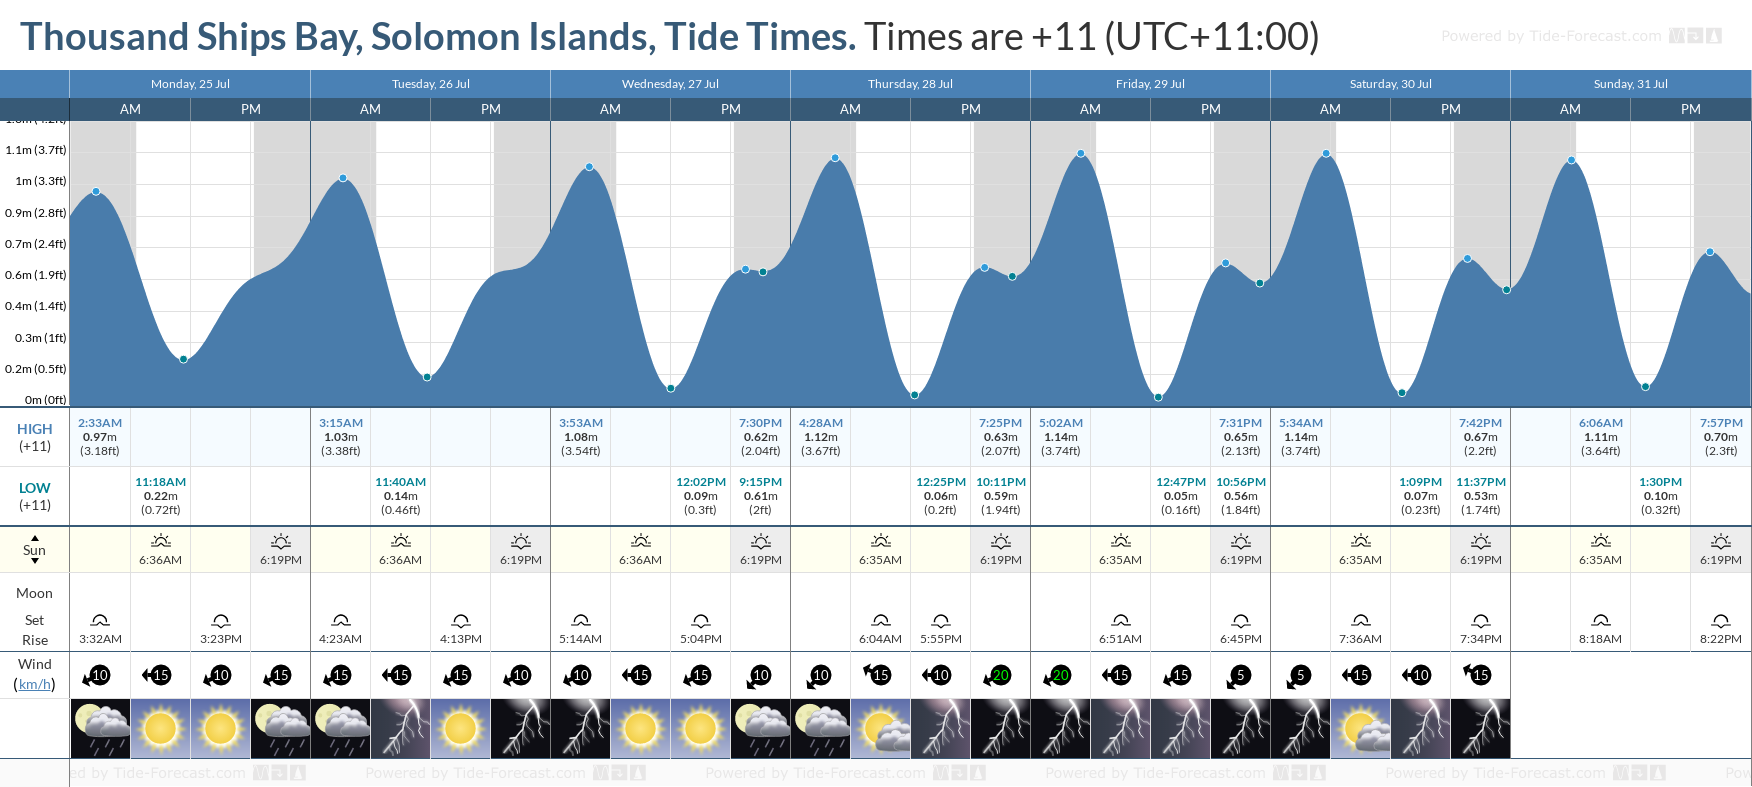 Thousand Ships Bay, Solomon Islands Tide Chart including high and low tide tide times for the next 7 days